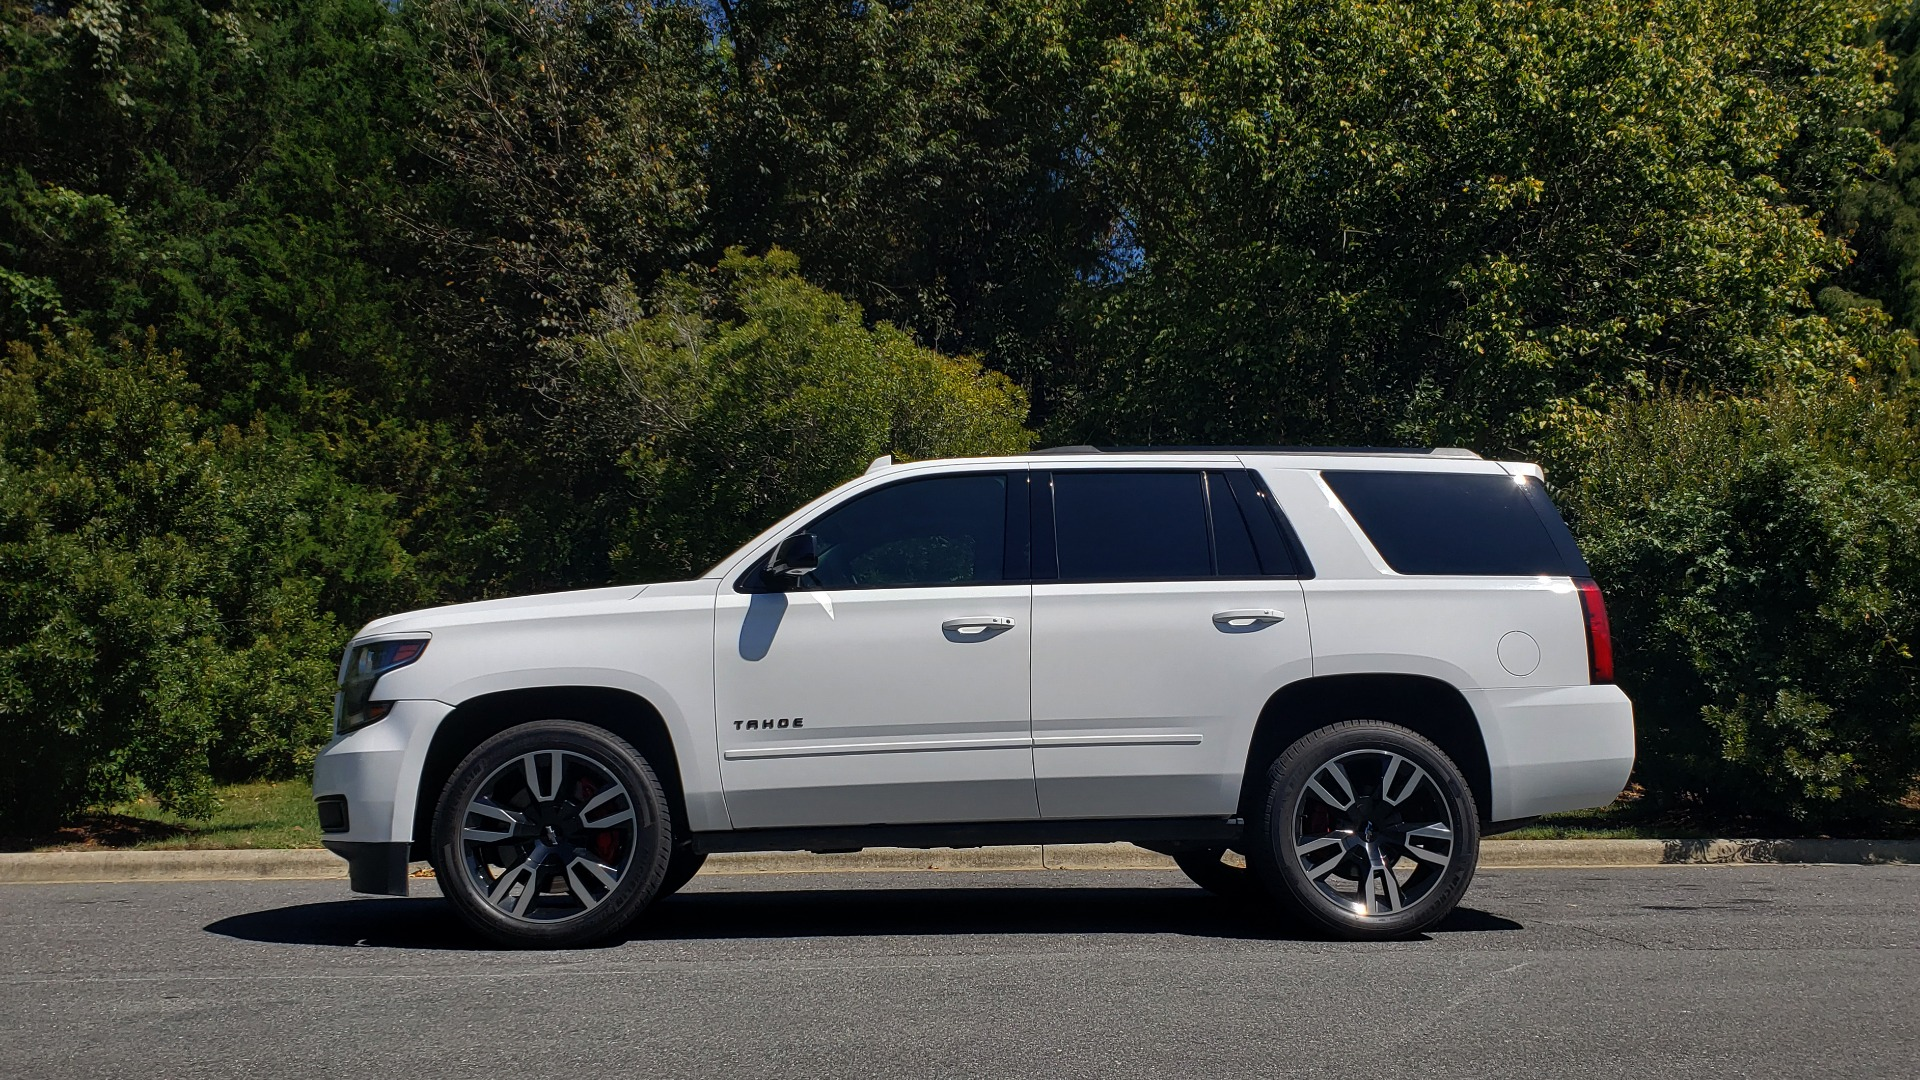 Used 2018 Chevrolet TAHOE PREMIER 4WD / 6.2L V8 / NAV / SUNROOF / ENT / BOSE / 3-ROW / REARVIEW for sale Sold at Formula Imports in Charlotte NC 28227 4